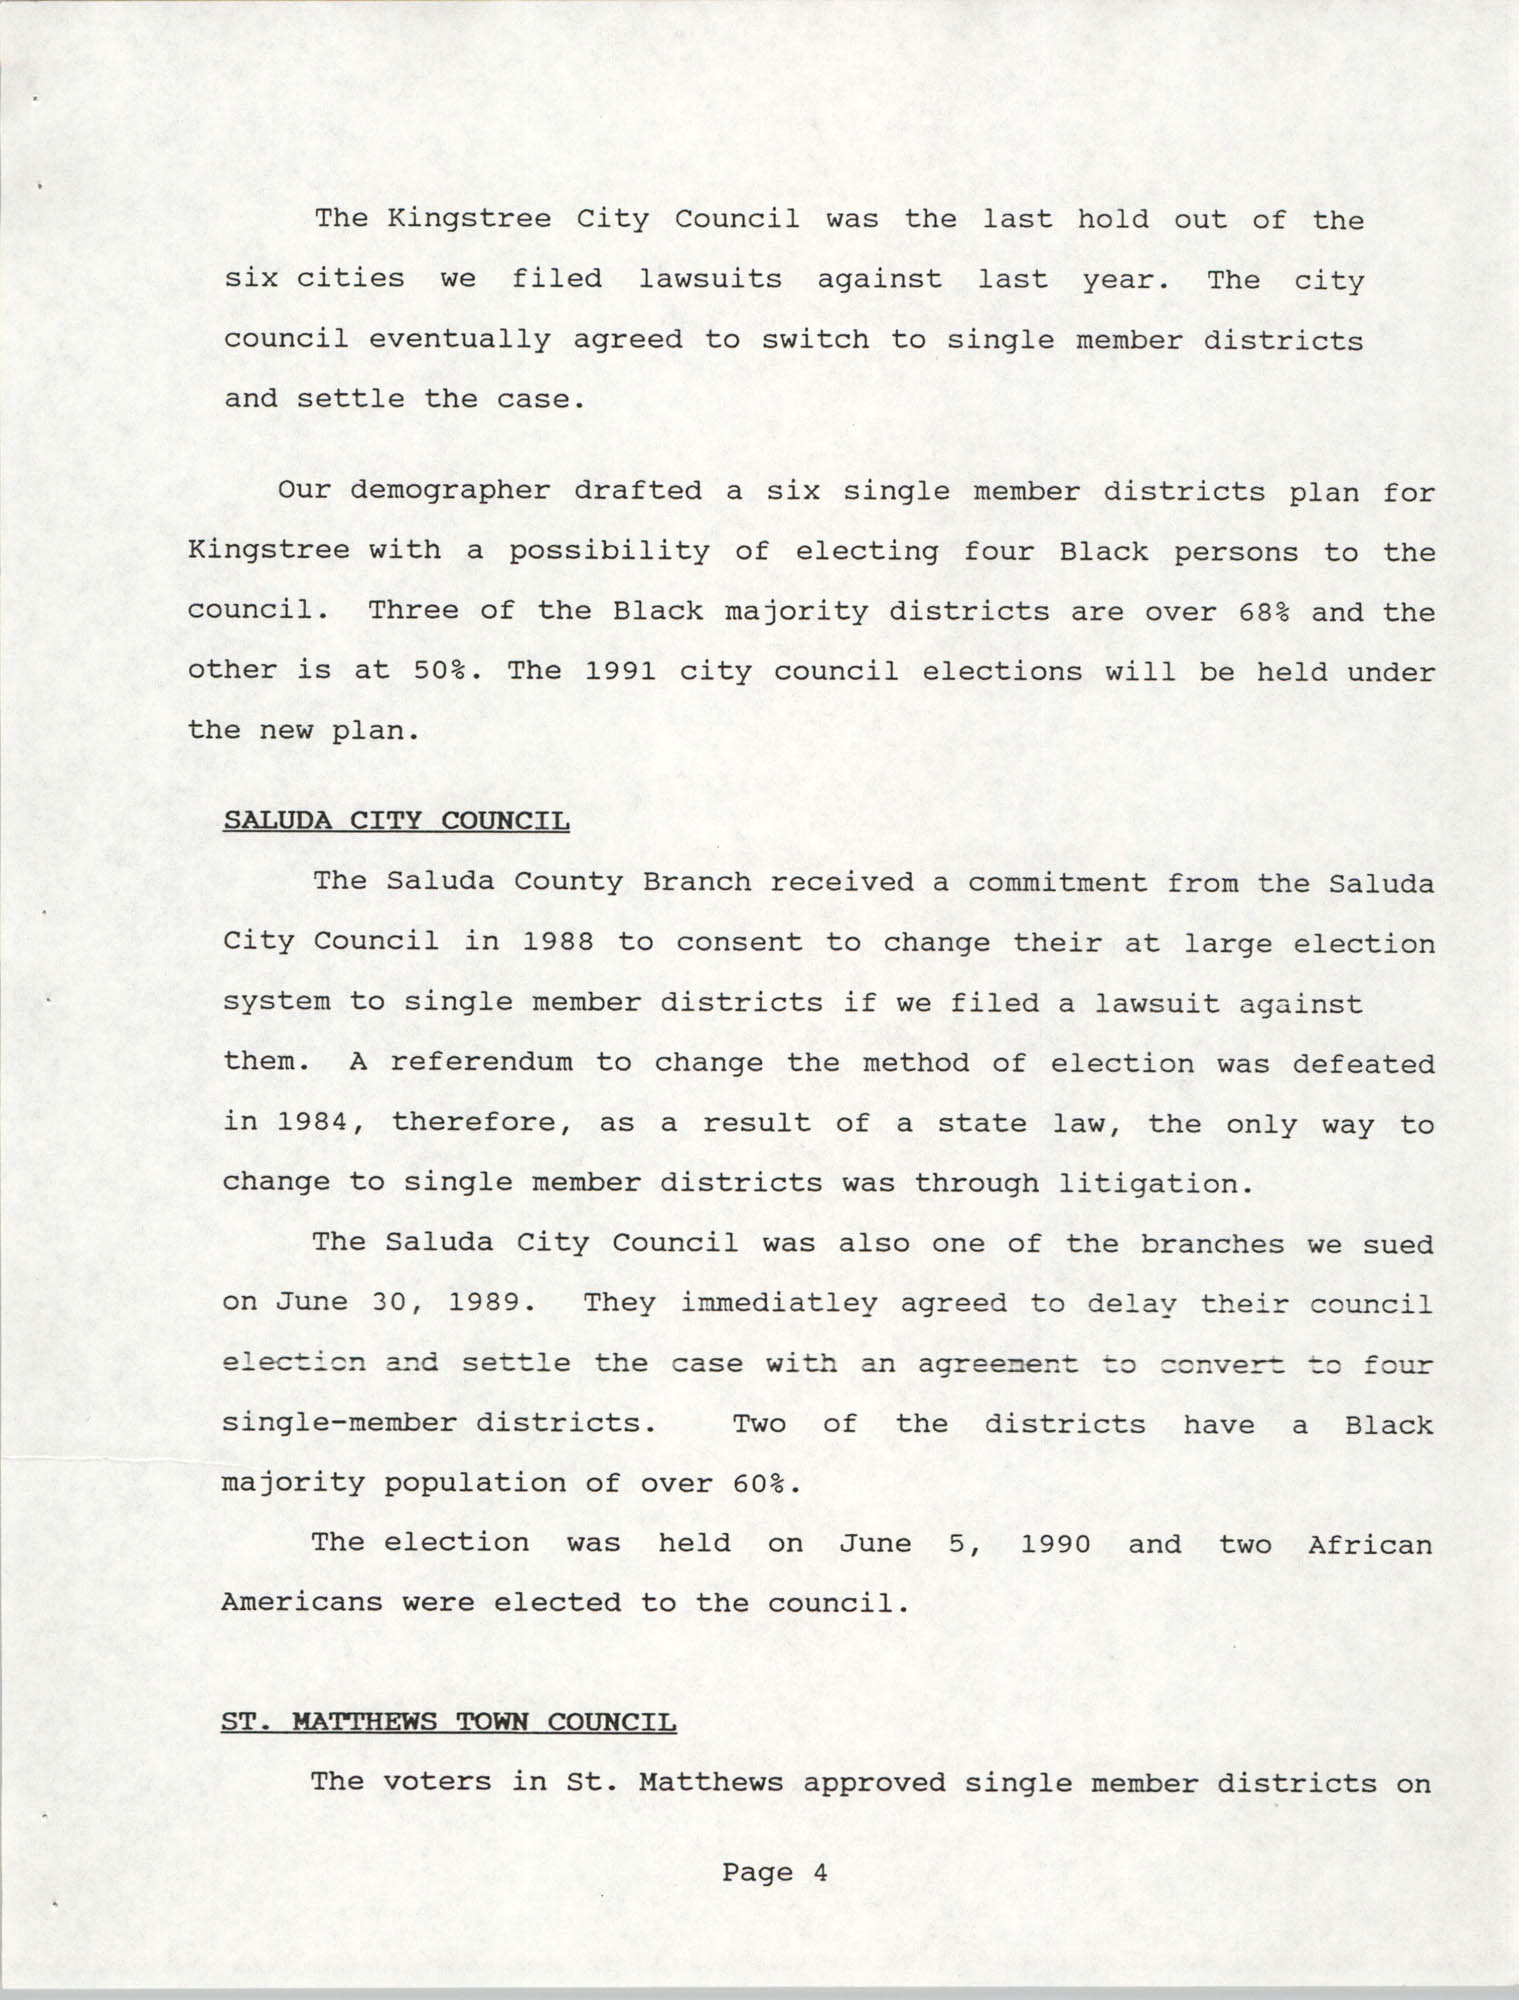 South Carolina Conference of Branches of the NAACP, 1990 Annual Report, Part One, Page 4